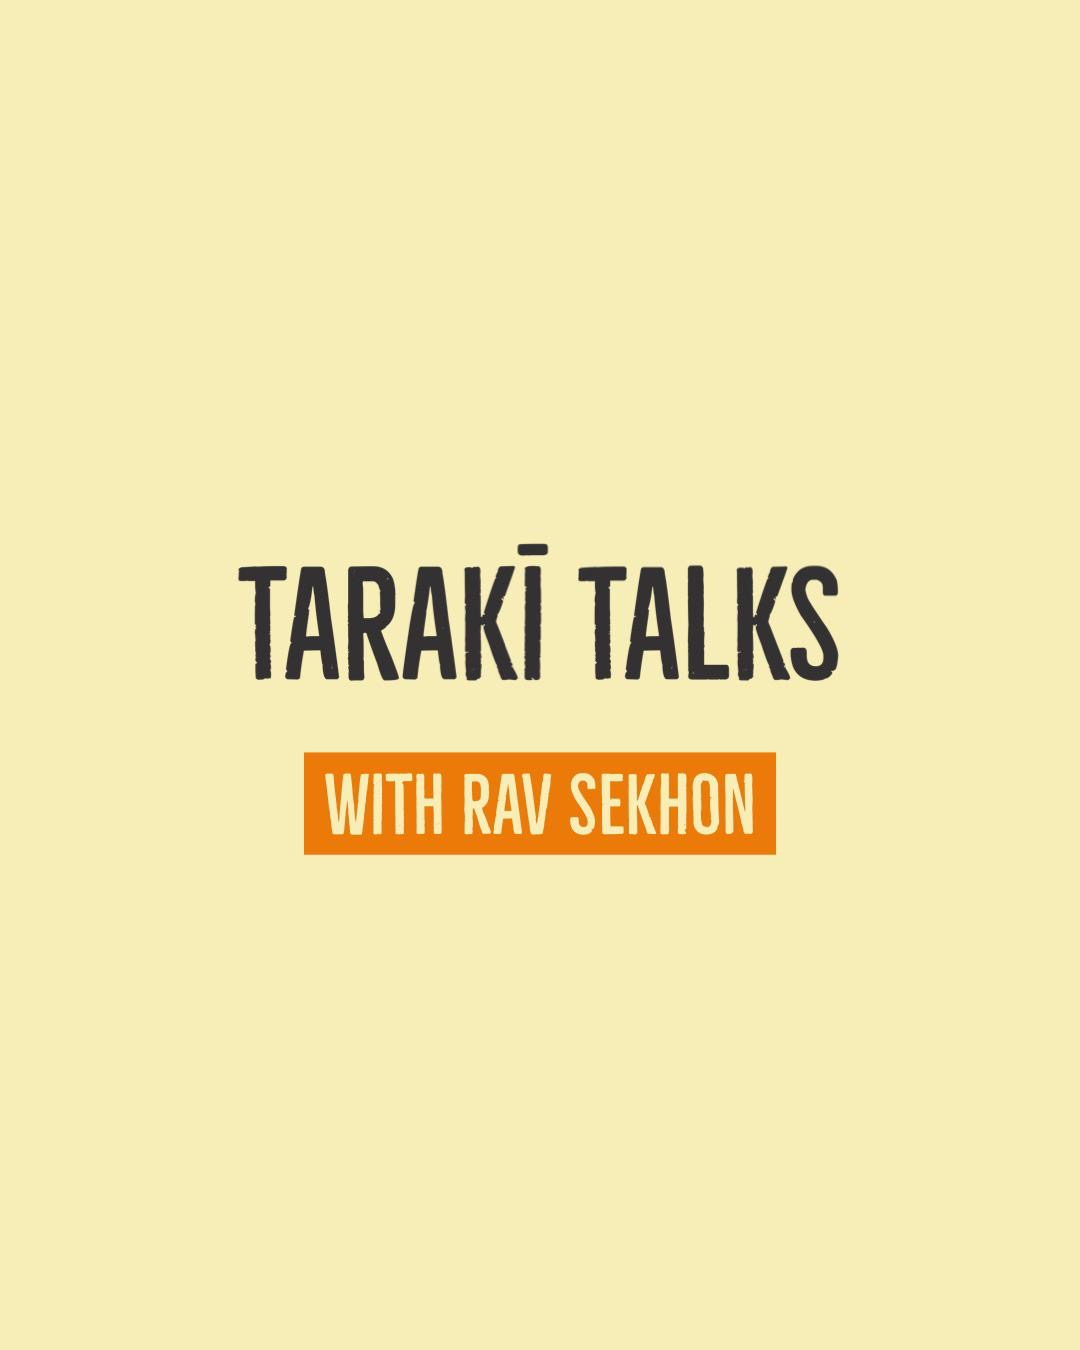 Taraki Talks with Rav Sekhon